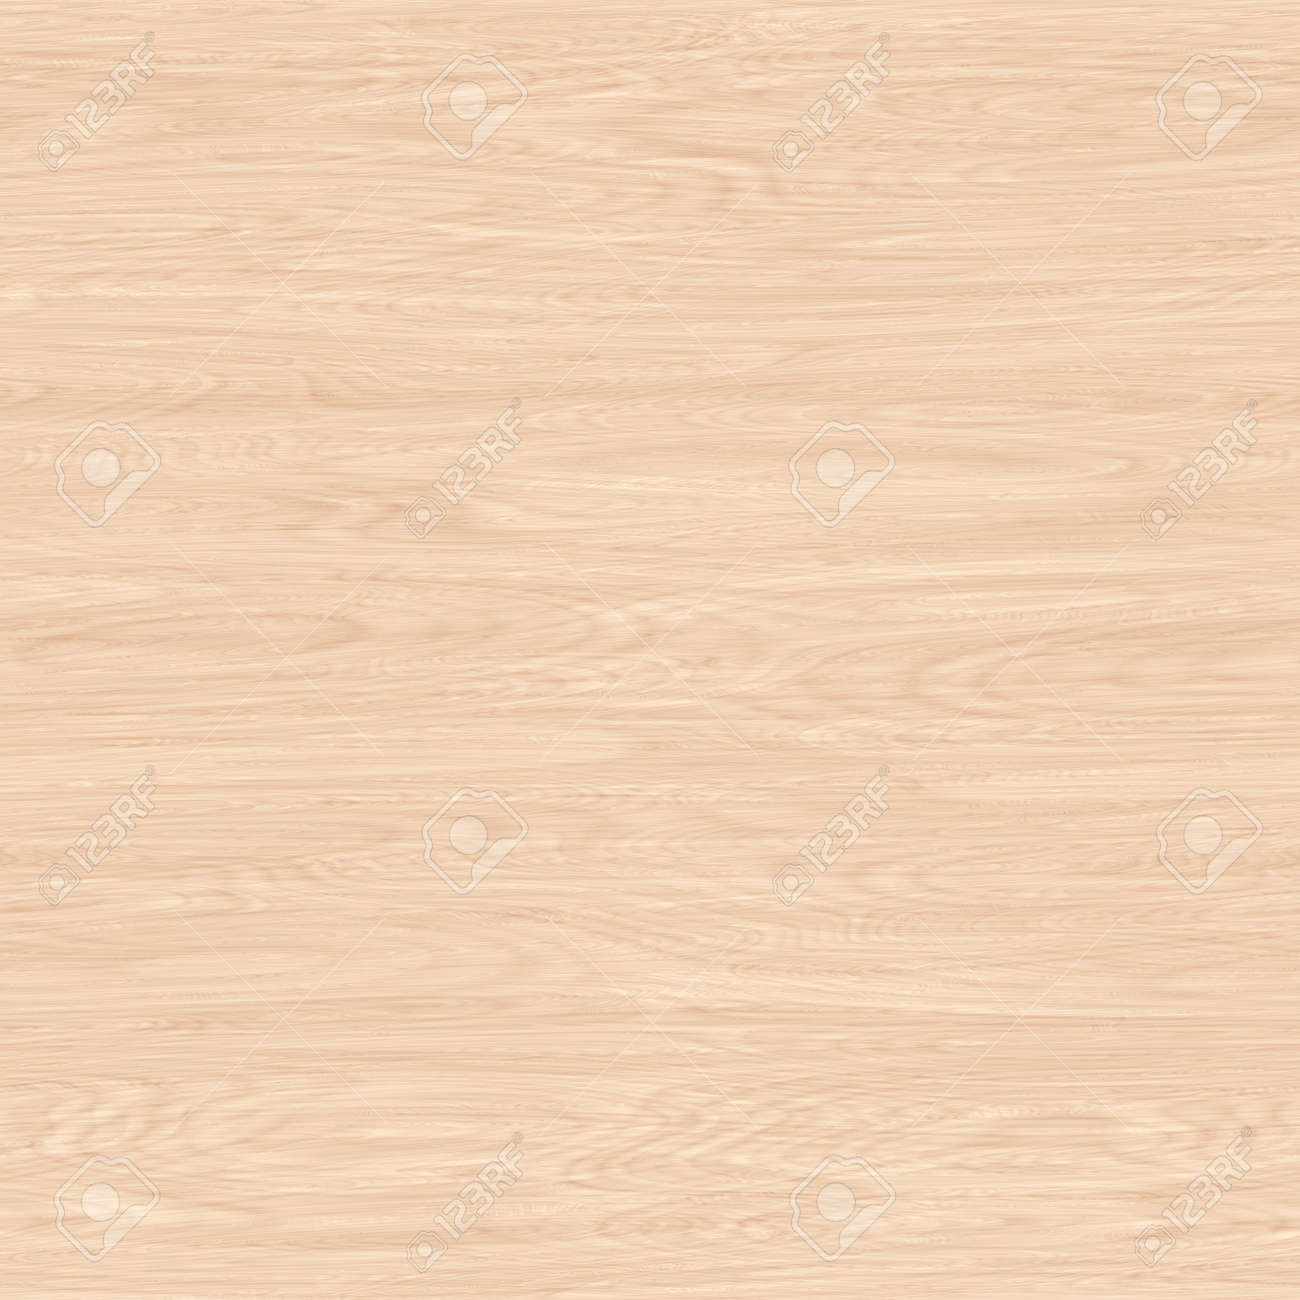 seamless light wood floor. Light wood seamless texture or background Stock Photo  45670766 Wood Seamless Texture Or Background Picture And